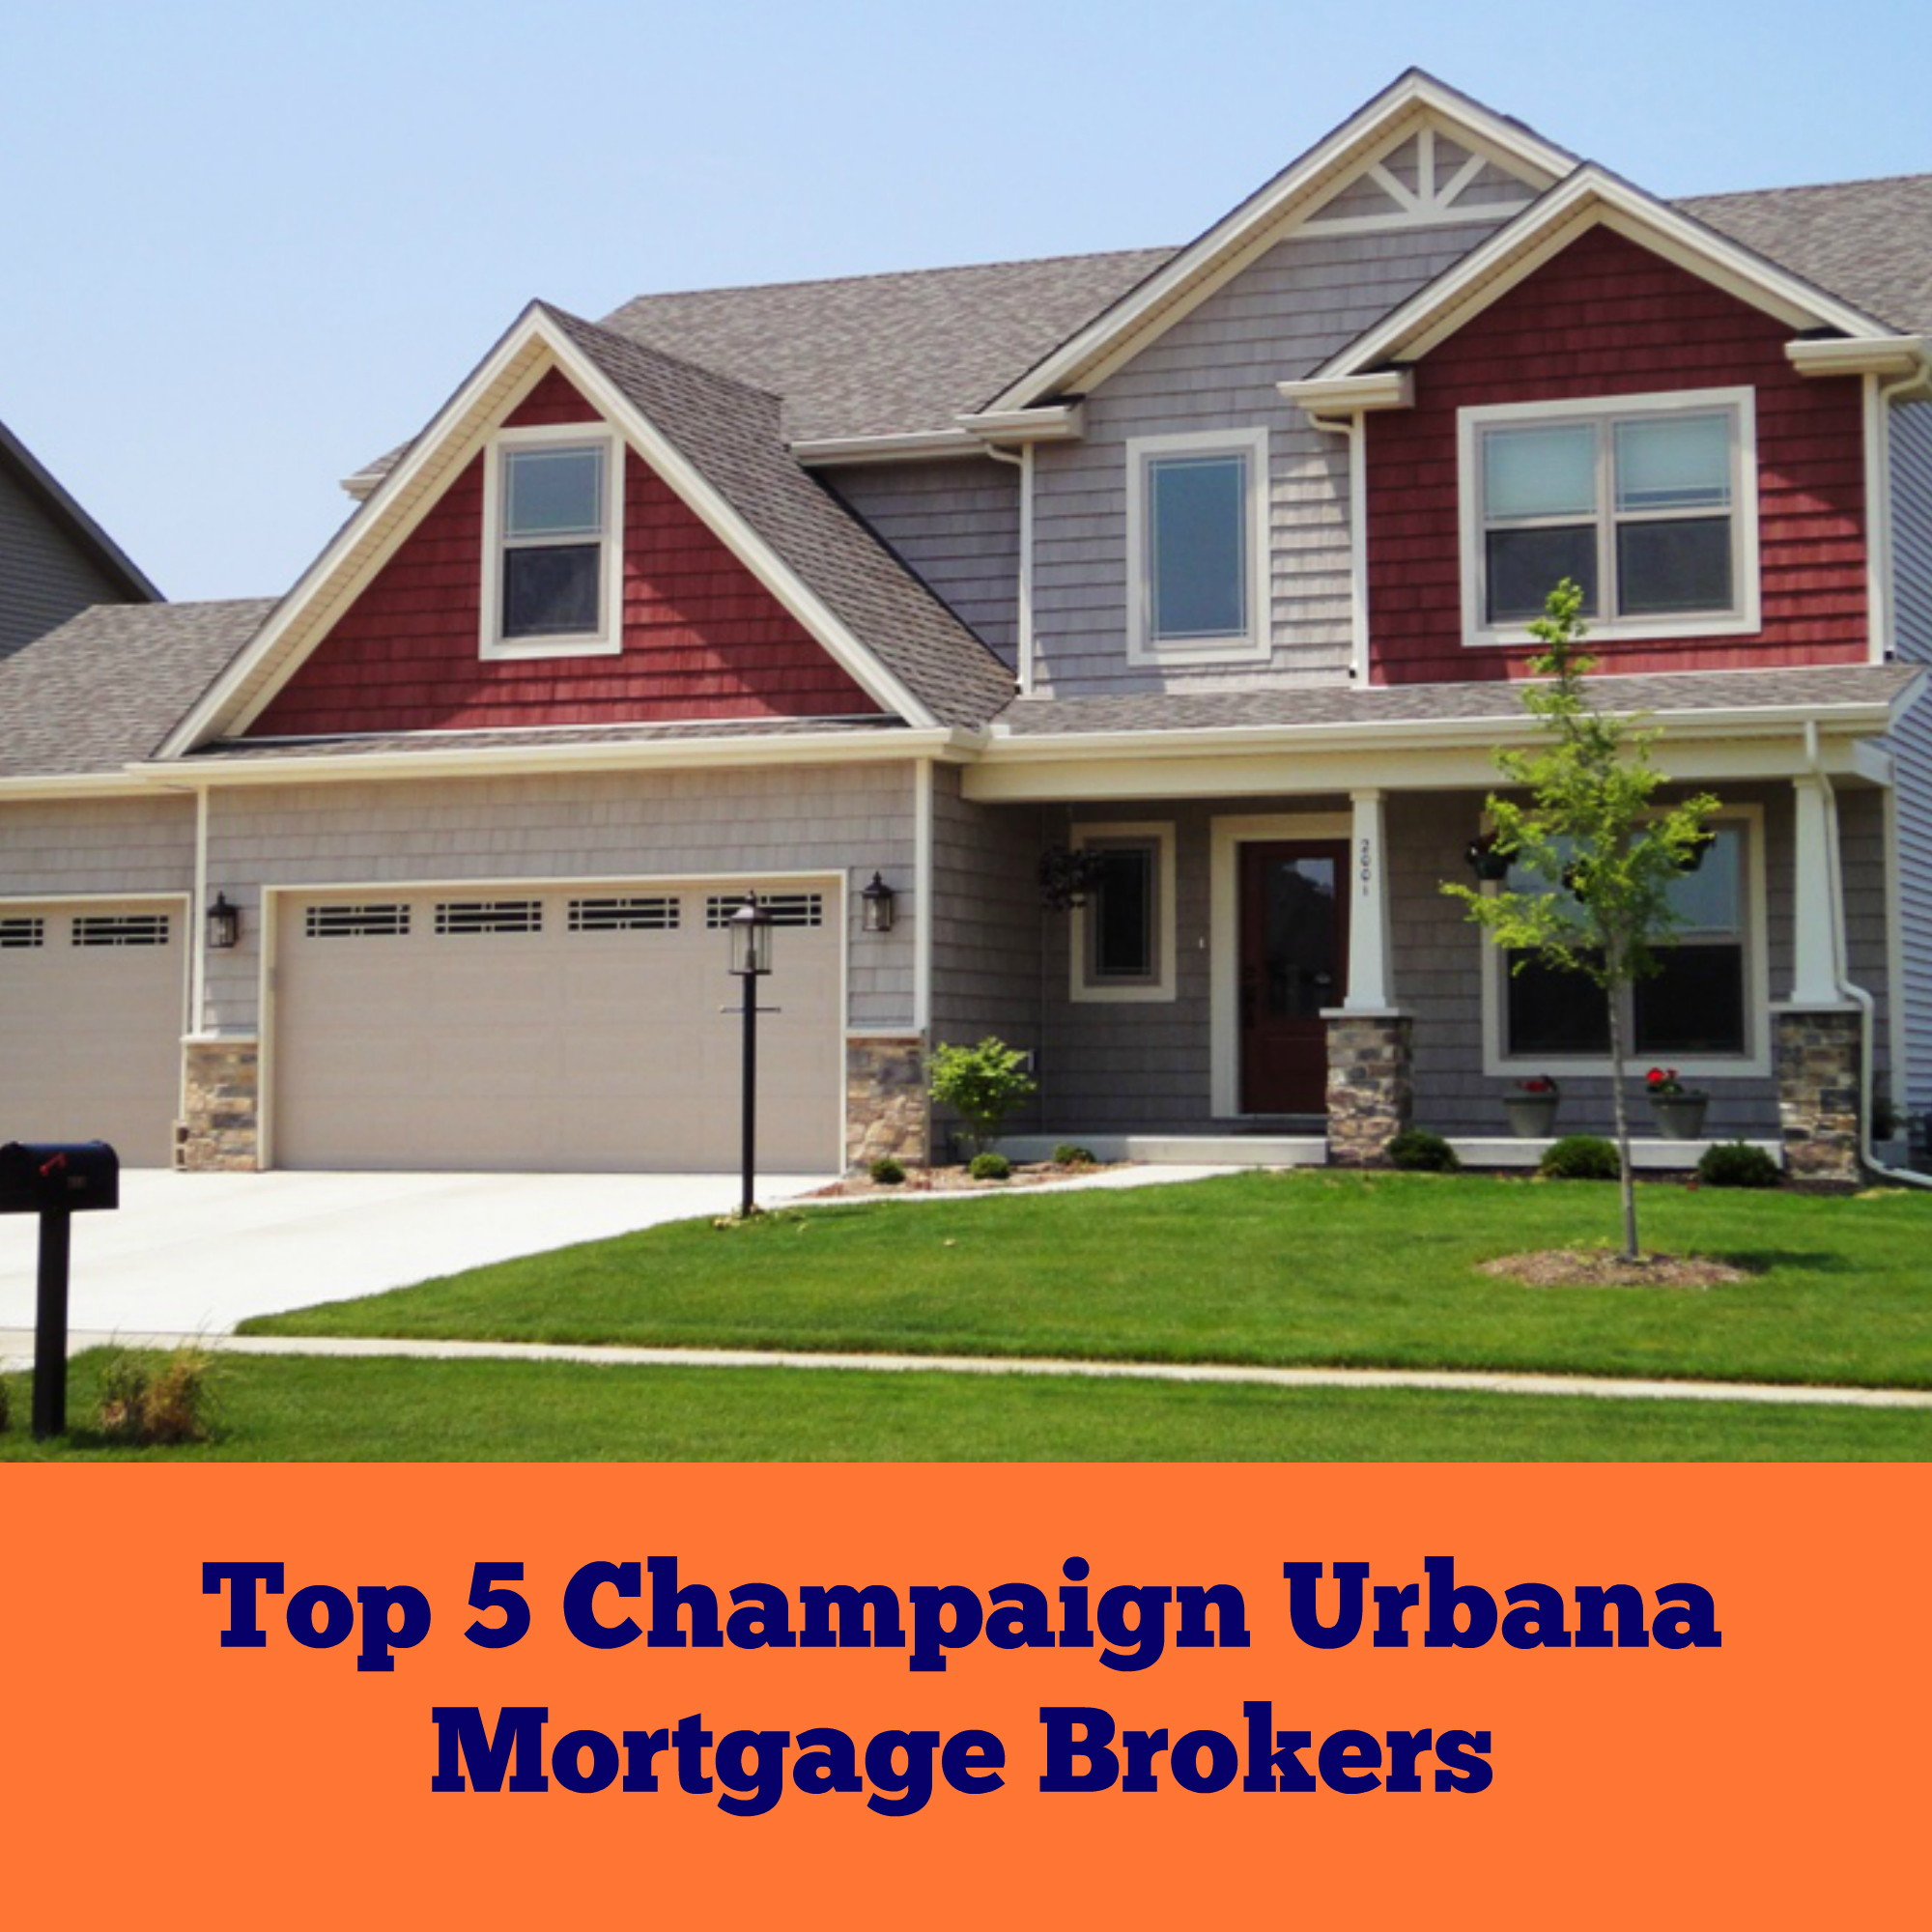 Top5ChampaignUrbanaMortgageBrokers